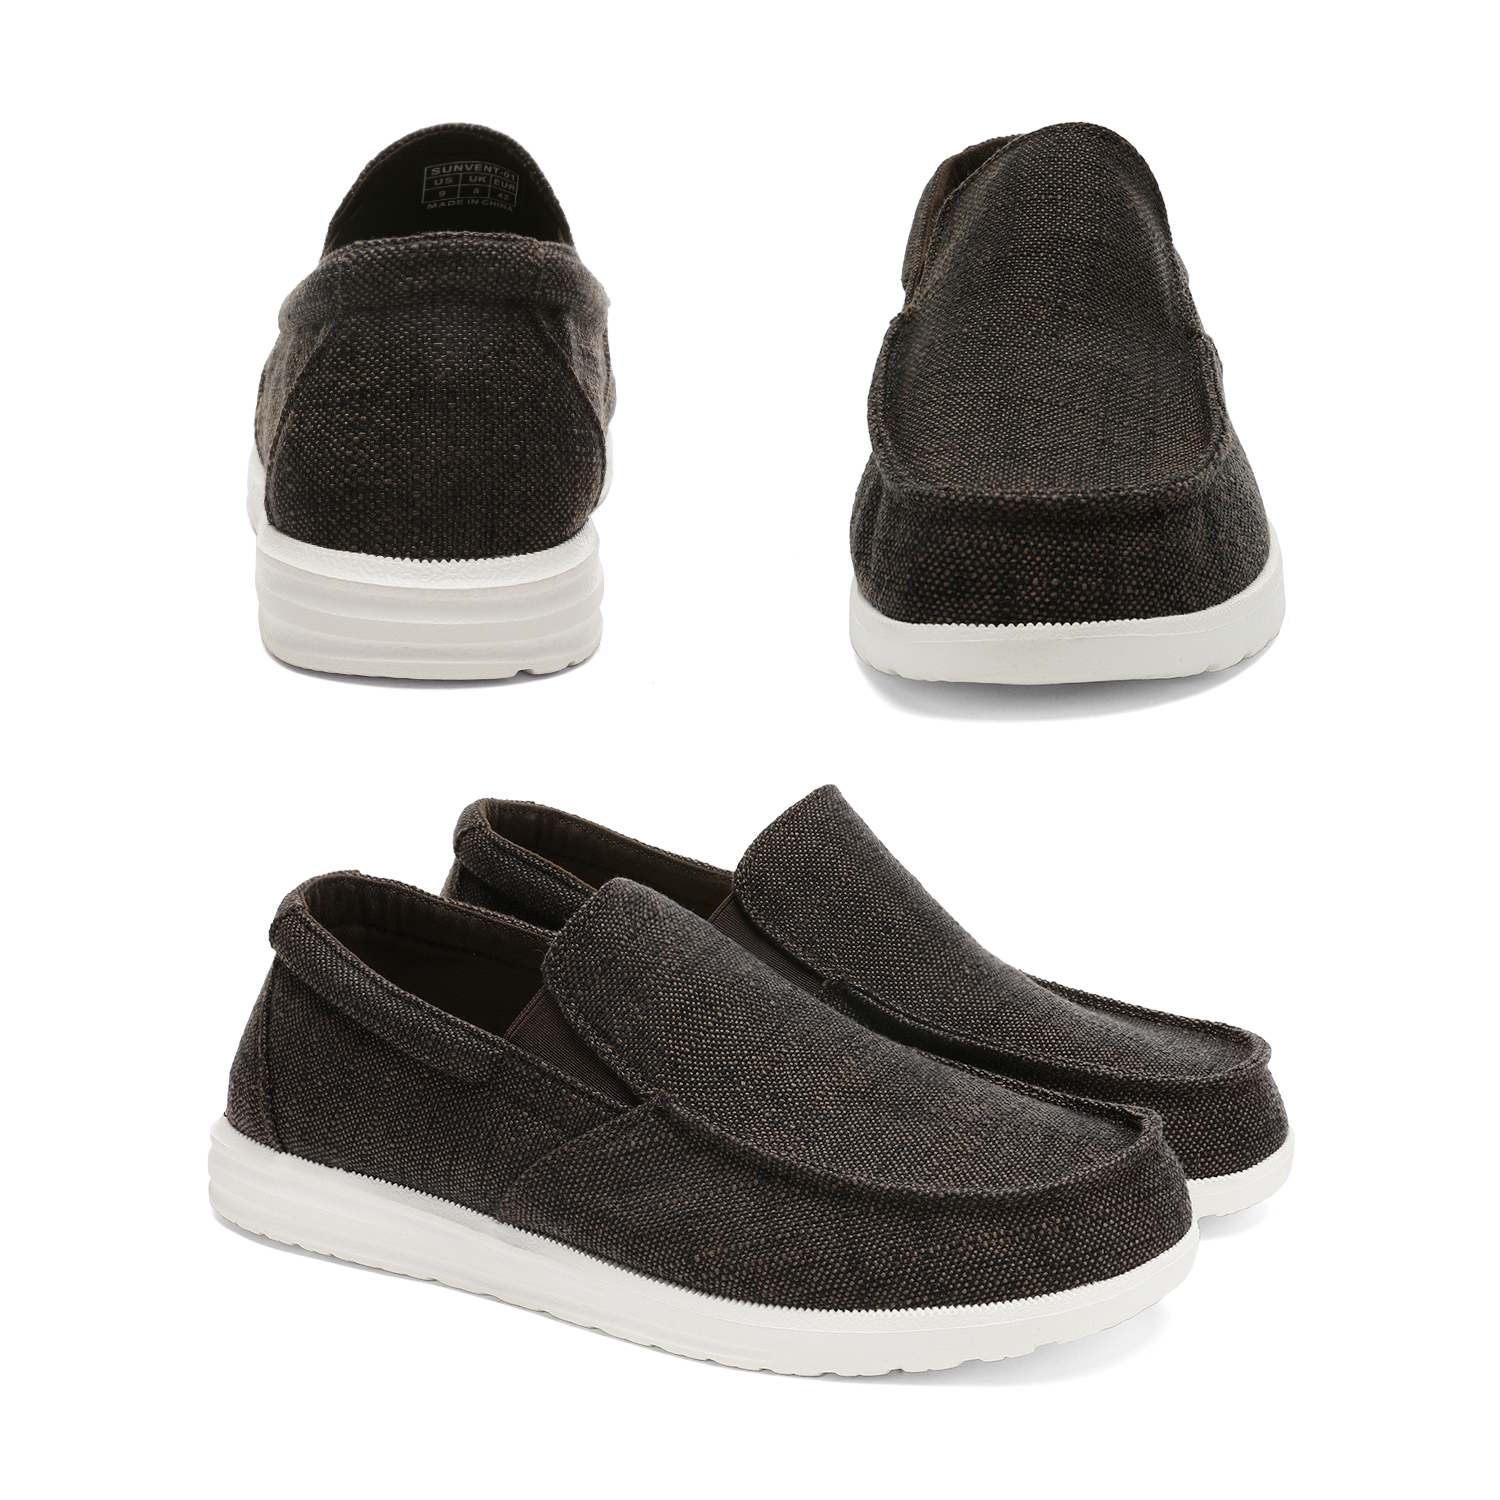 Bruno-Marc-Men-039-s-Lightweight-Canvas-Slip-On-Loafer-Shoes-Moccasins-Walking-Shoes thumbnail 36